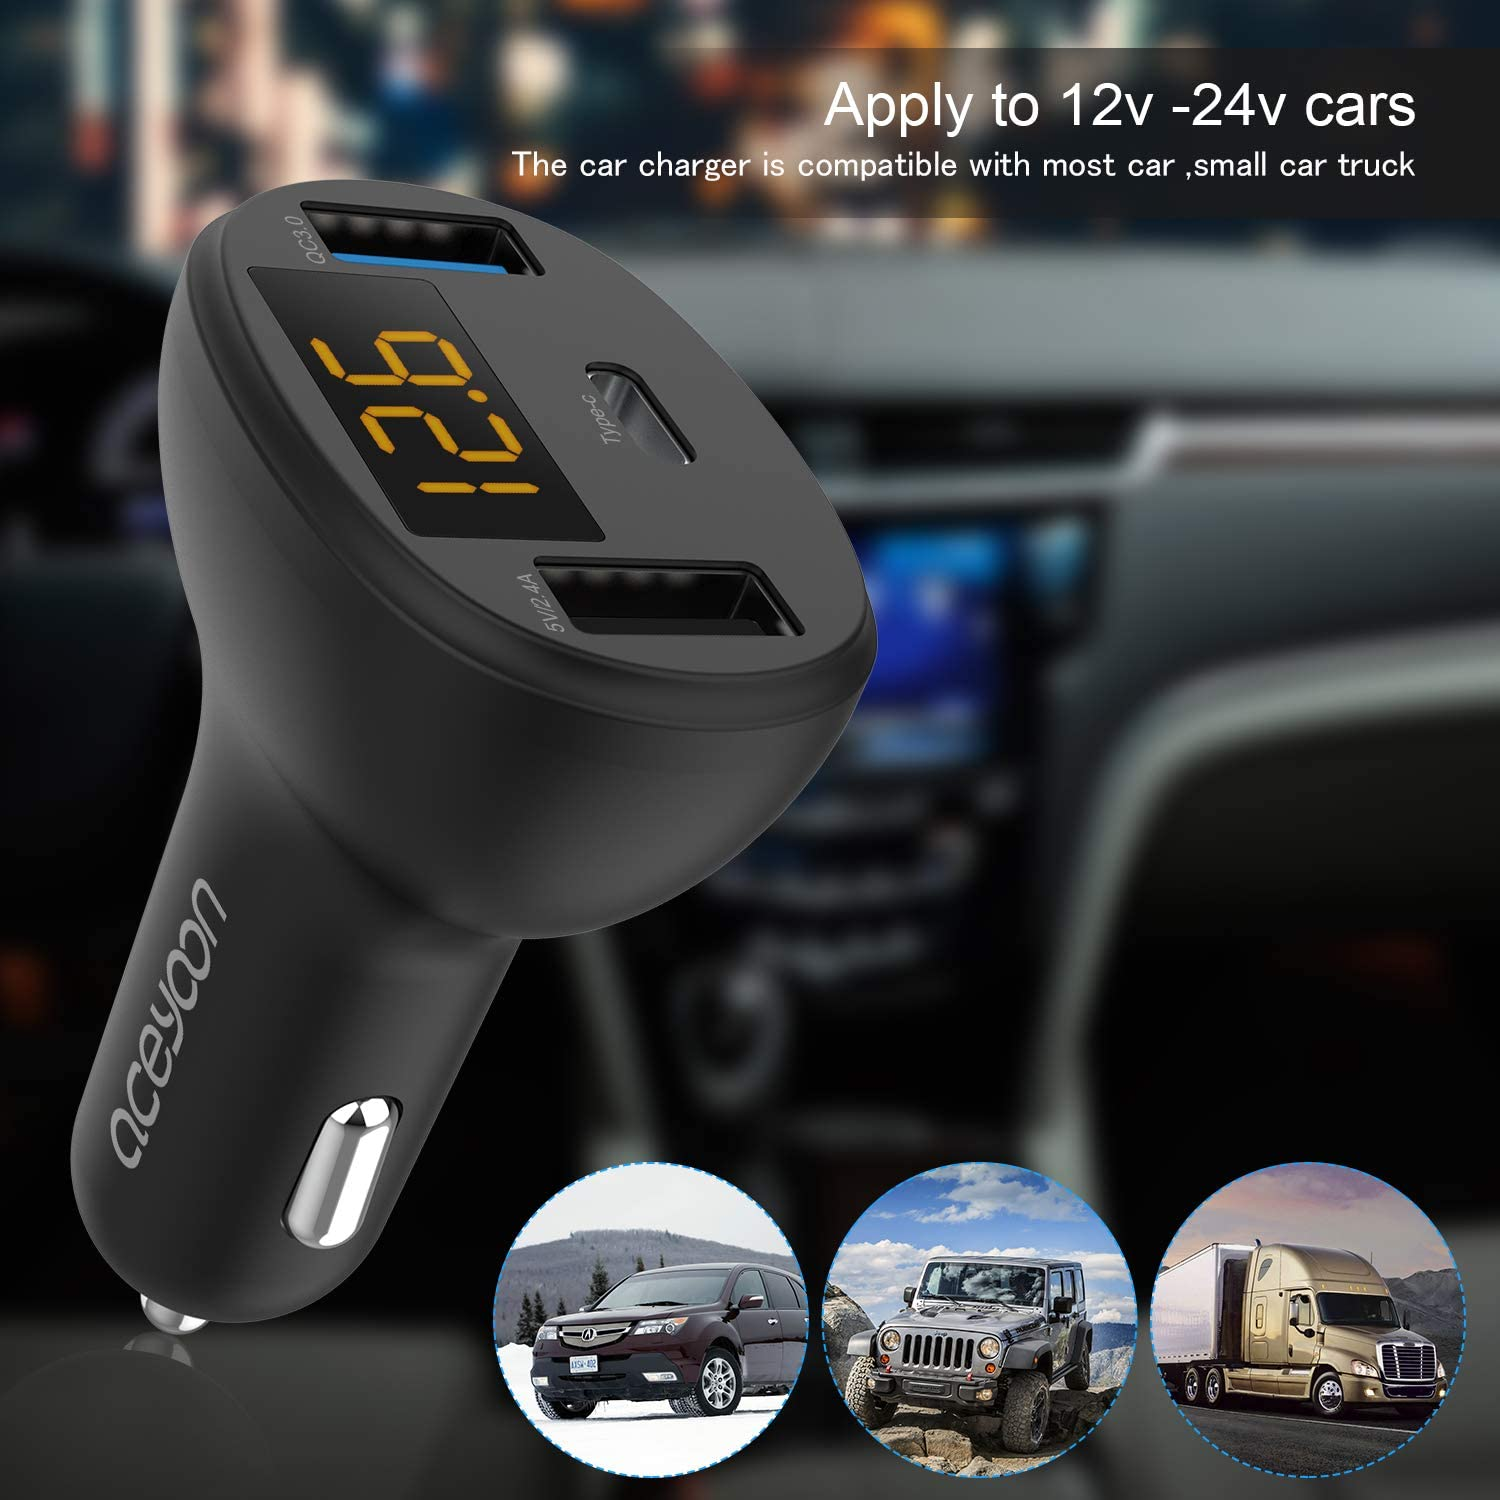 Note 8 Galaxy S10 aceyoon PD Car Charger USB C and Dual USB Ports QC 3.0 Fast Car Charging with LED Display 12V//24V Max 28W Car Charger Adapter Compatible for XS 2 XL Pixel 2 XR S9